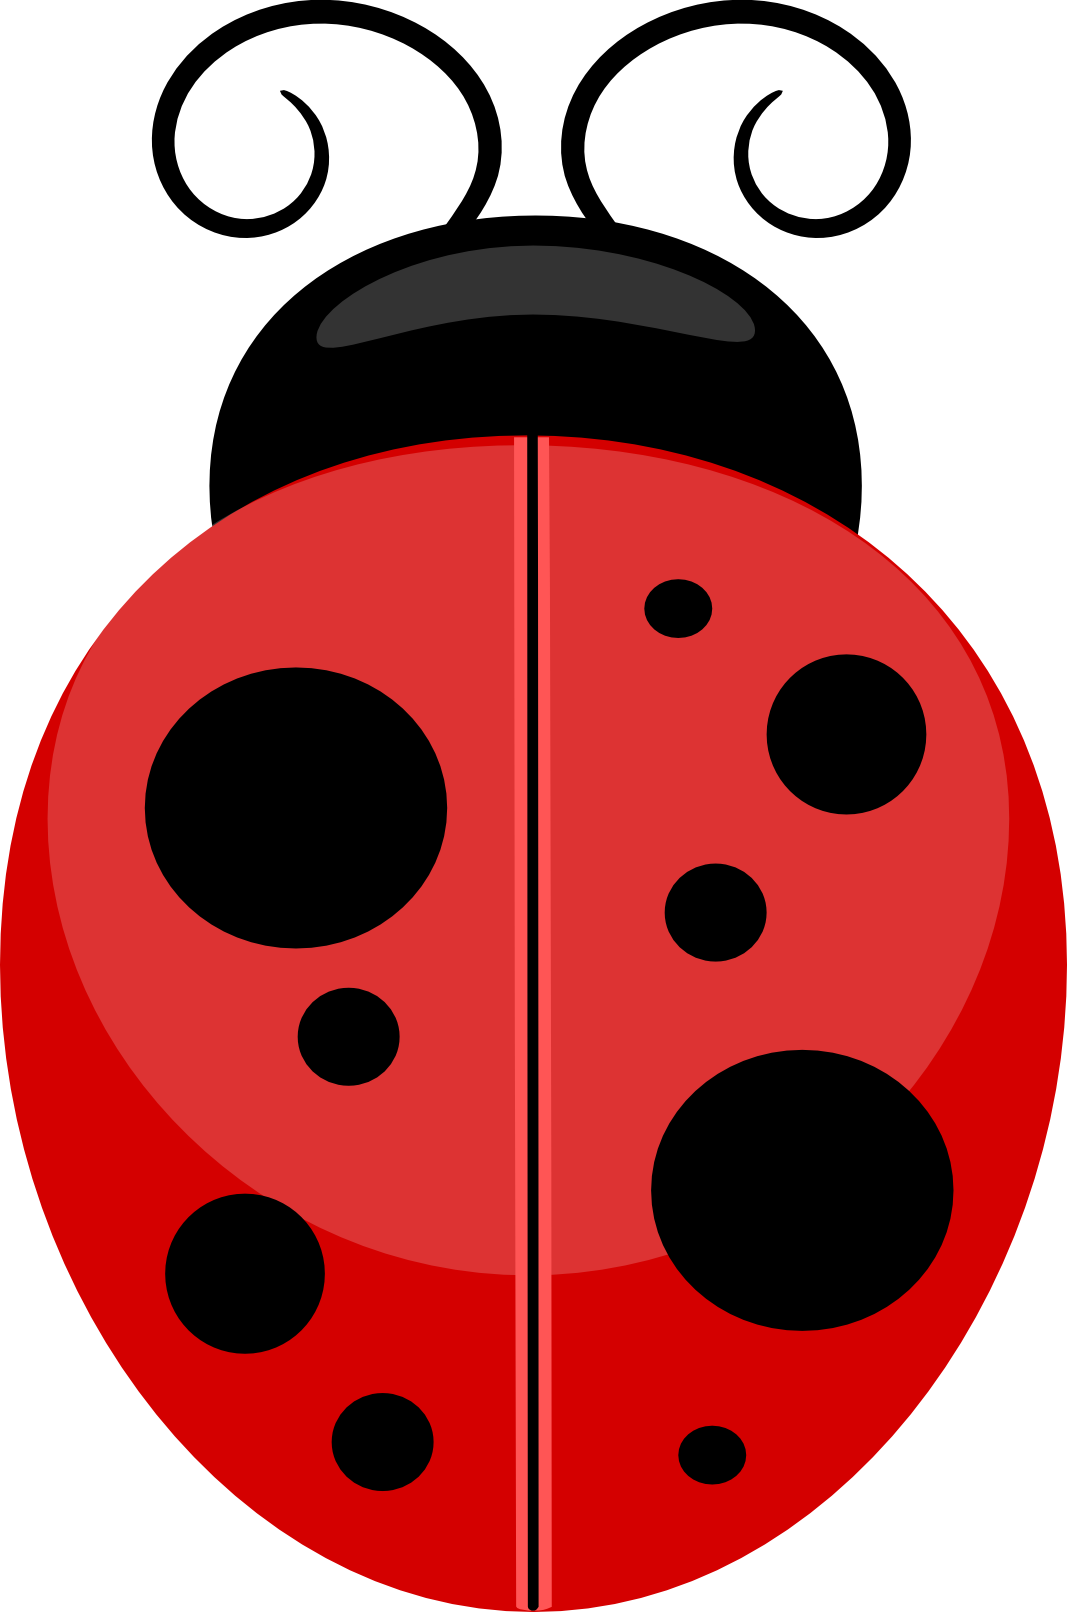 Mixed clip art pinterest. Ladybug clipart transparent background